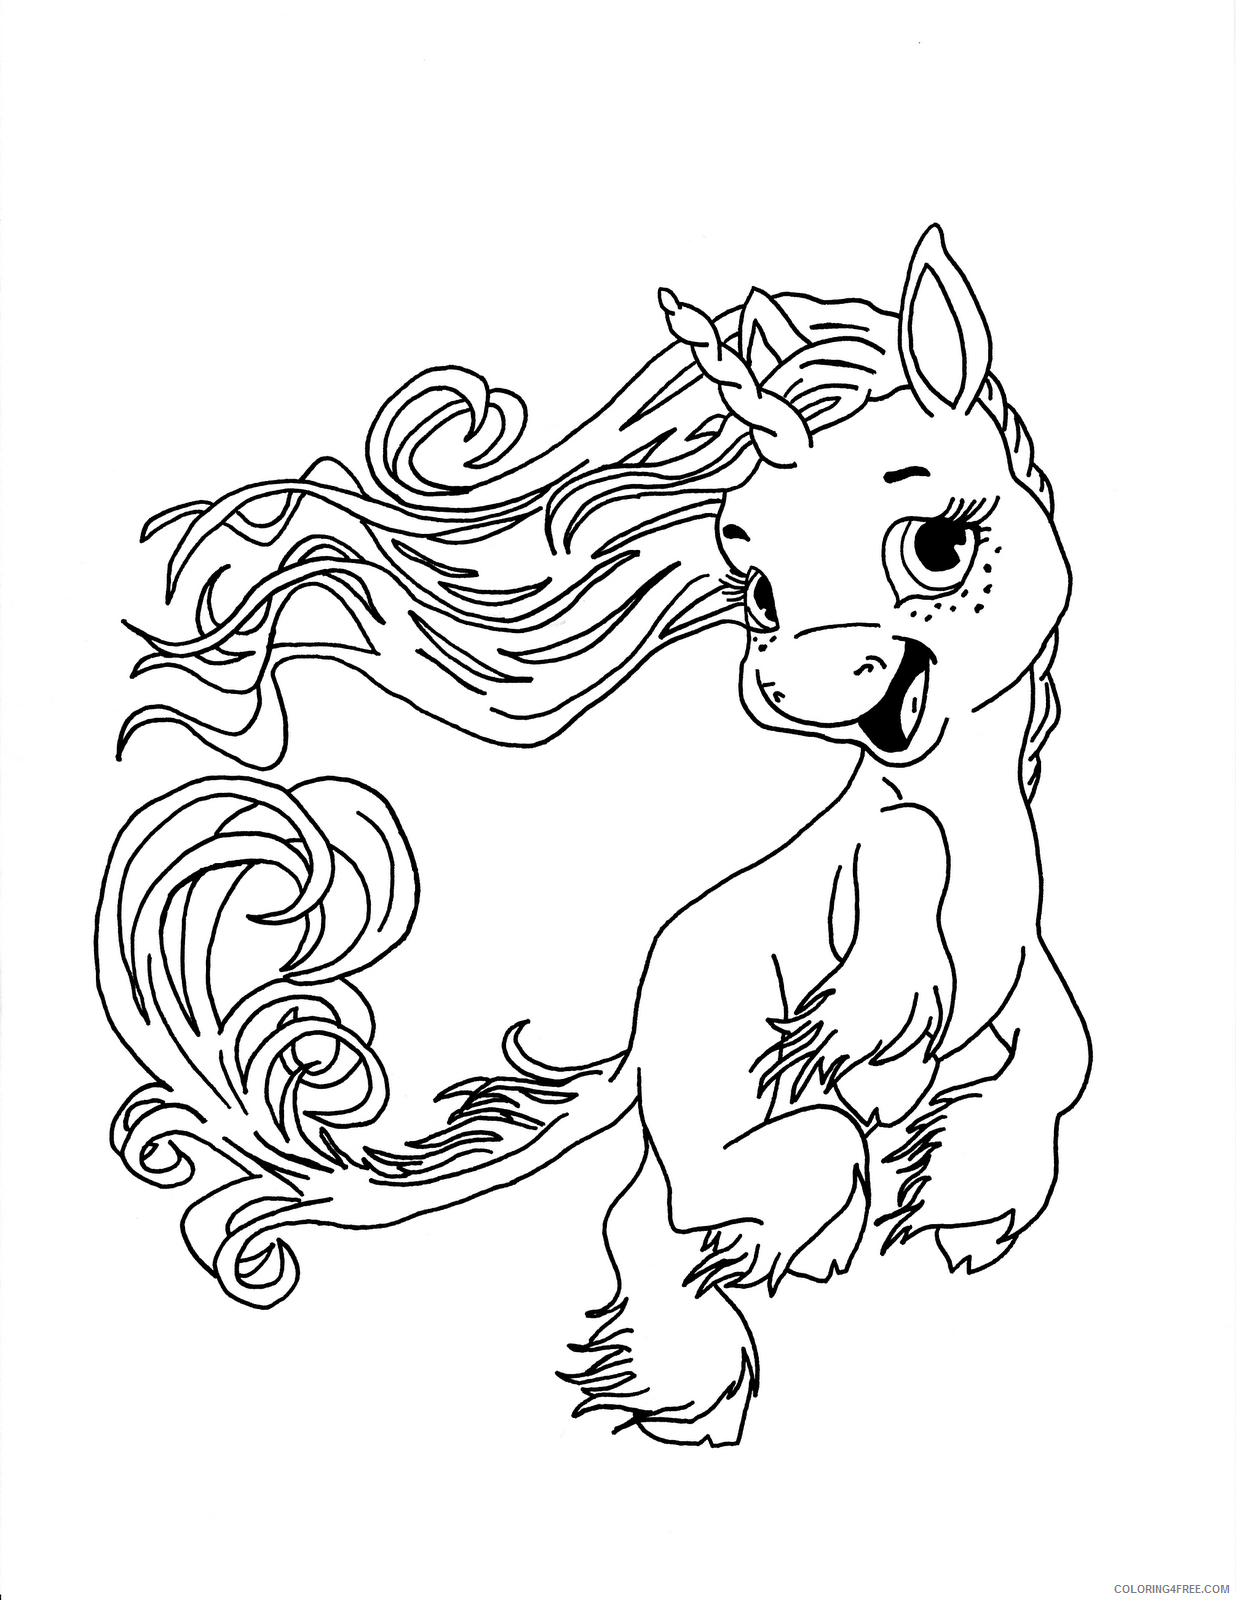 baby unicorn coloring pages for kids Coloring4free